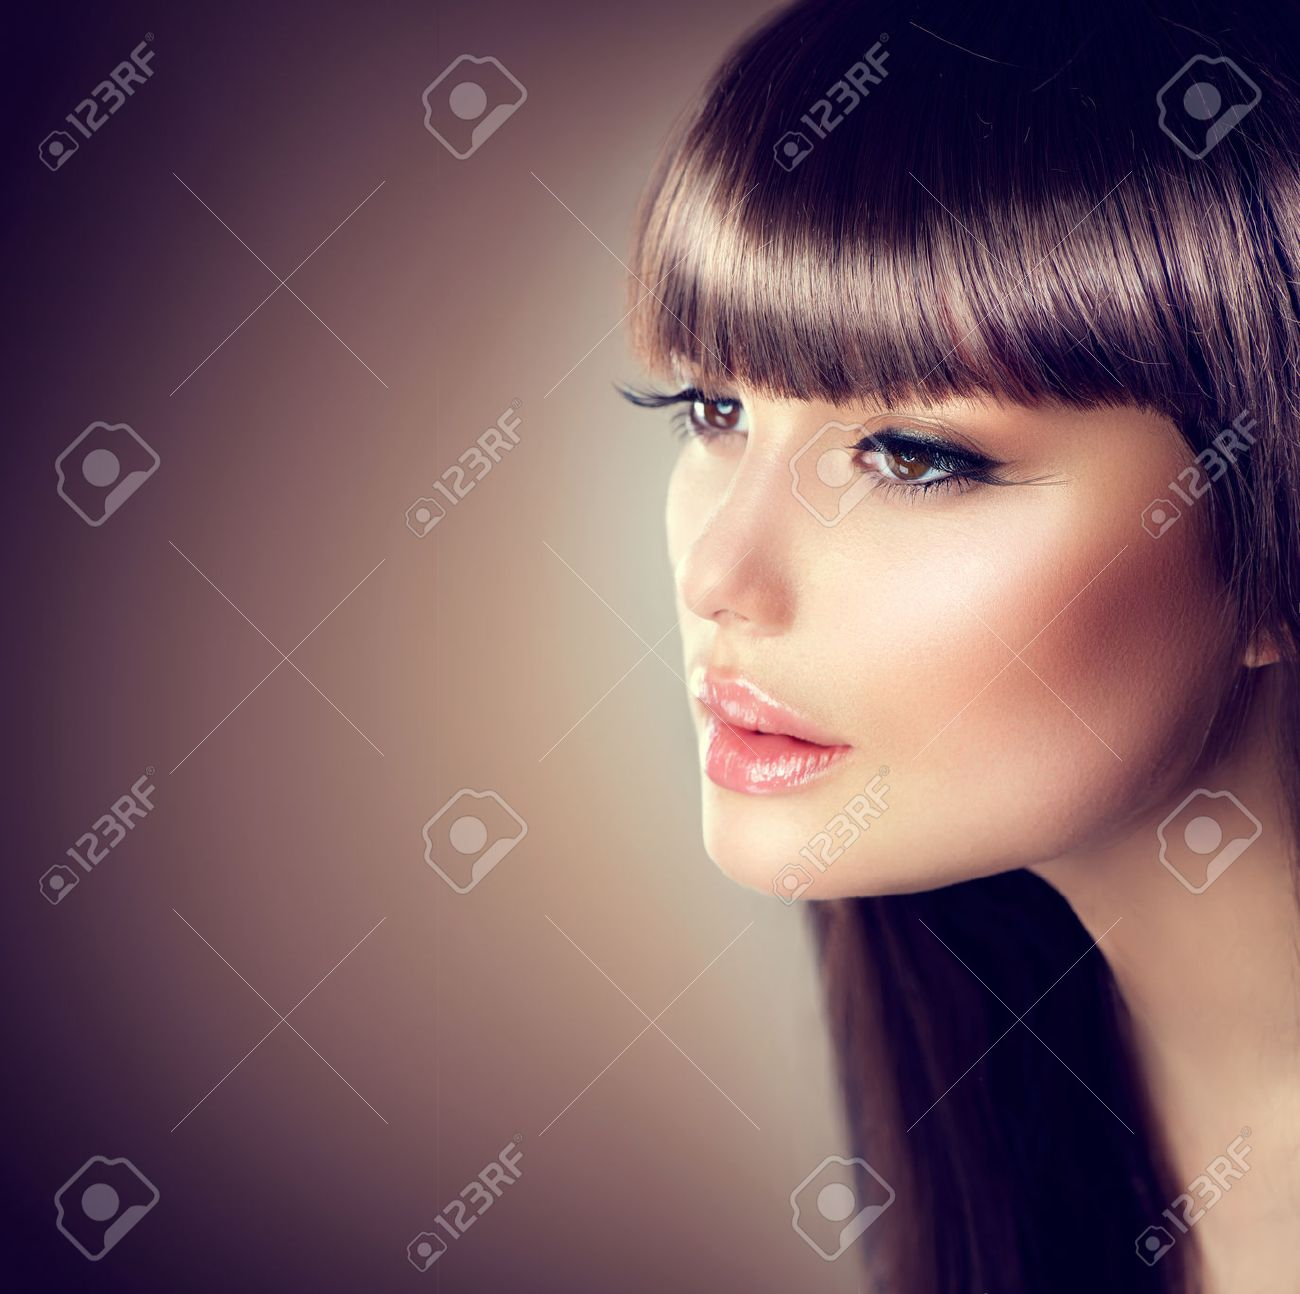 Beauty woman with beautiful make up and healthy smooth brown hair Stock Photo - 47190372